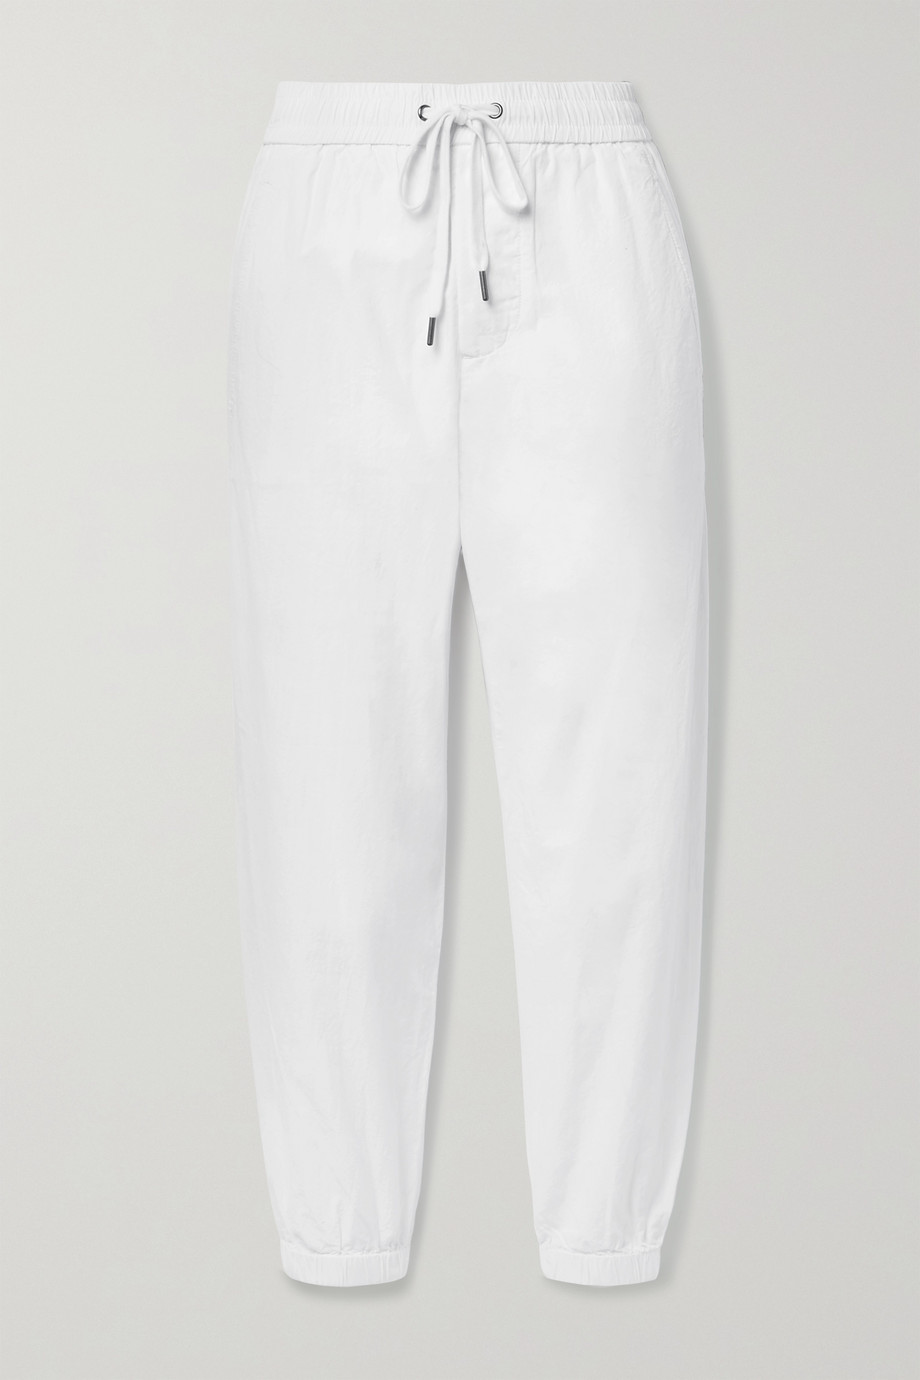 JAMES PERSE Crinkled cotton-poplin track pants